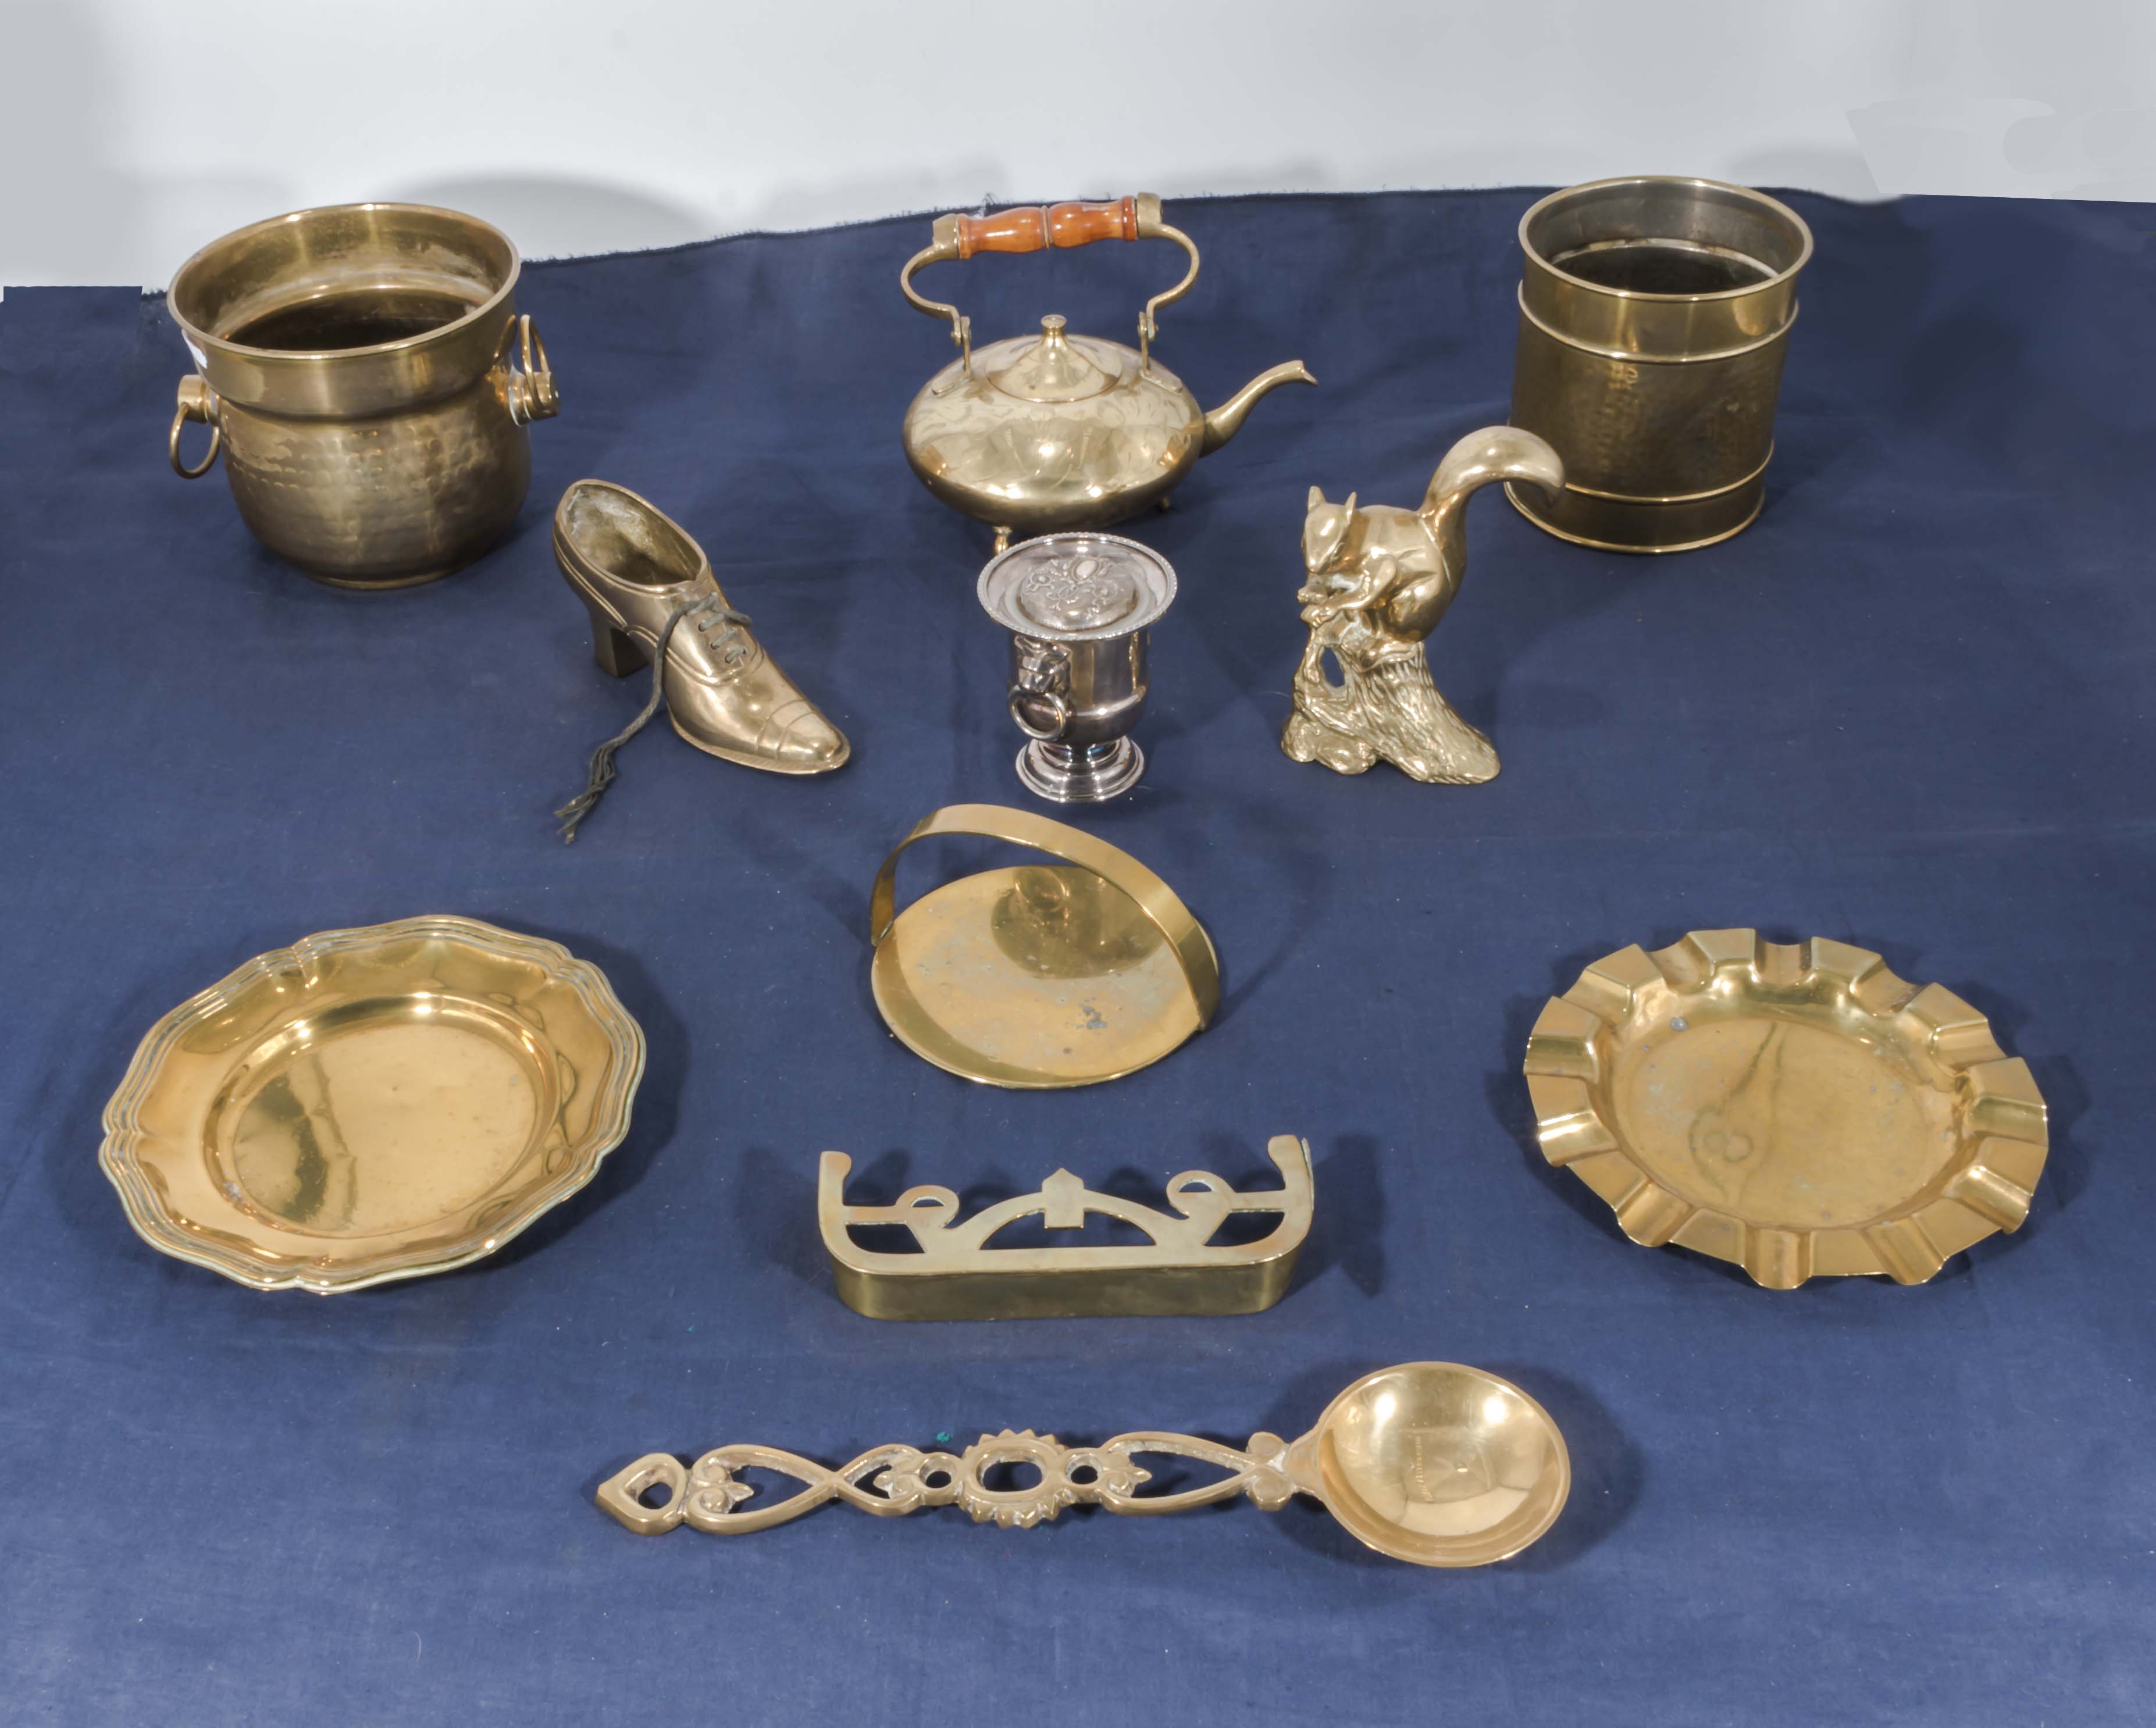 Lot 5 - A collection of brass items